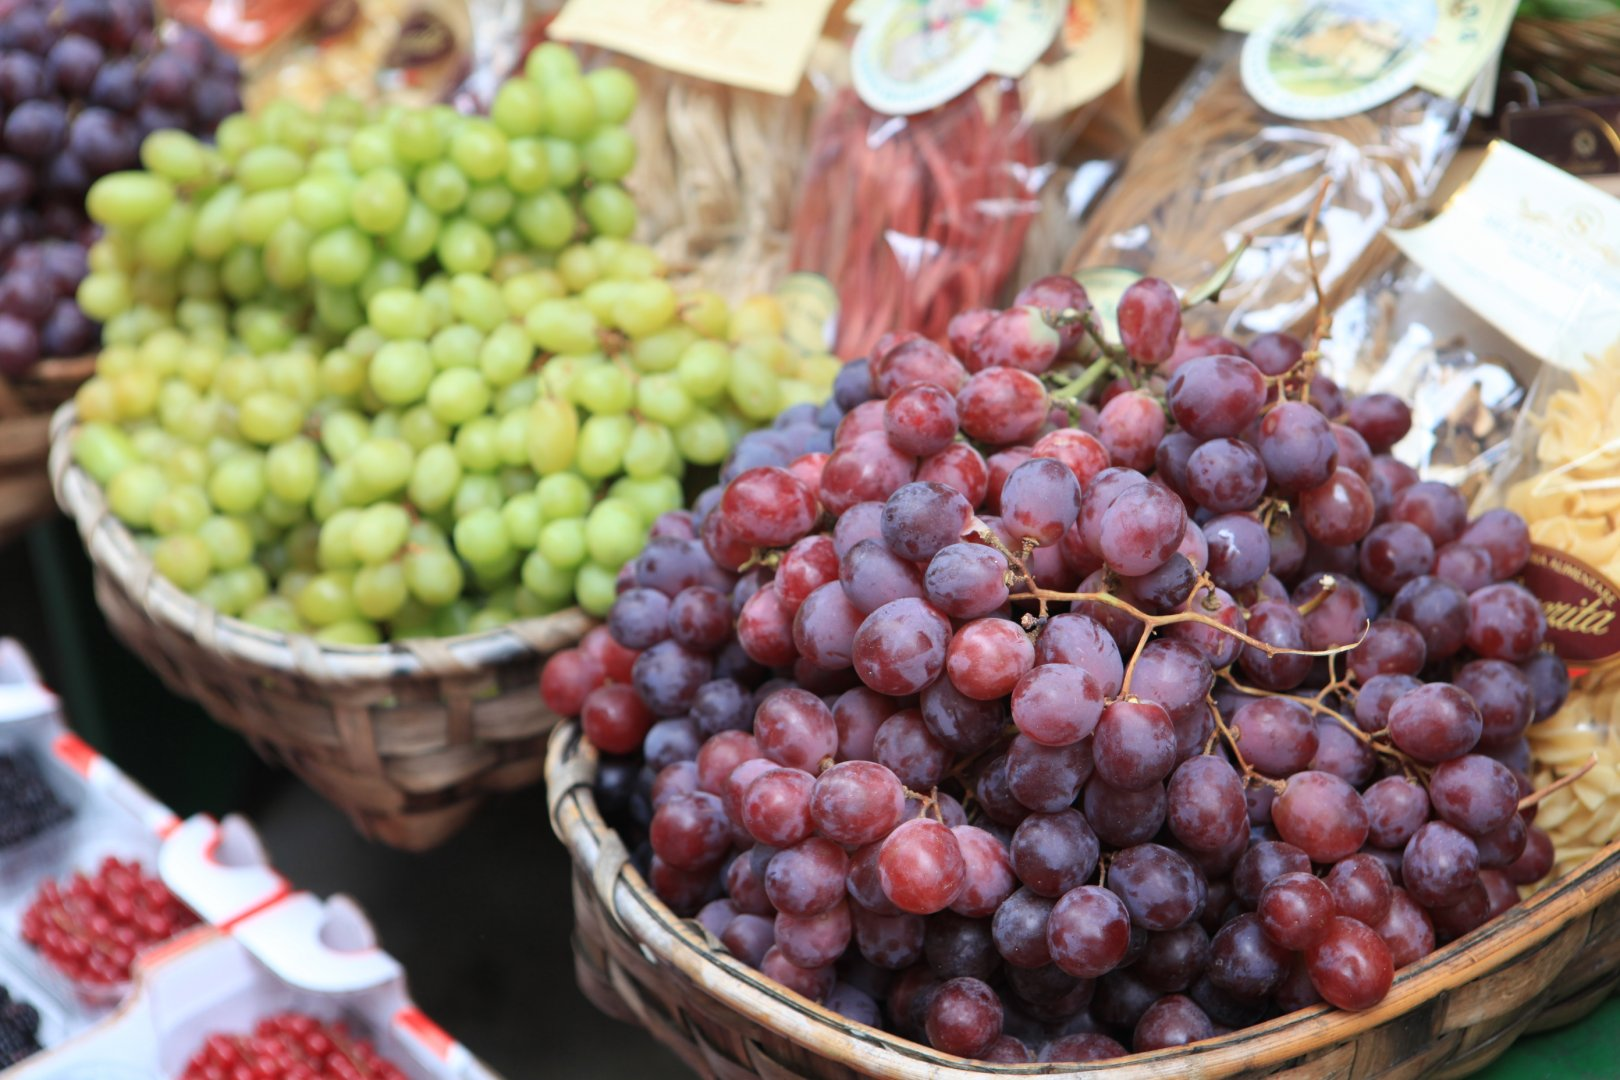 Grapes - fresh produce at a farmer's market